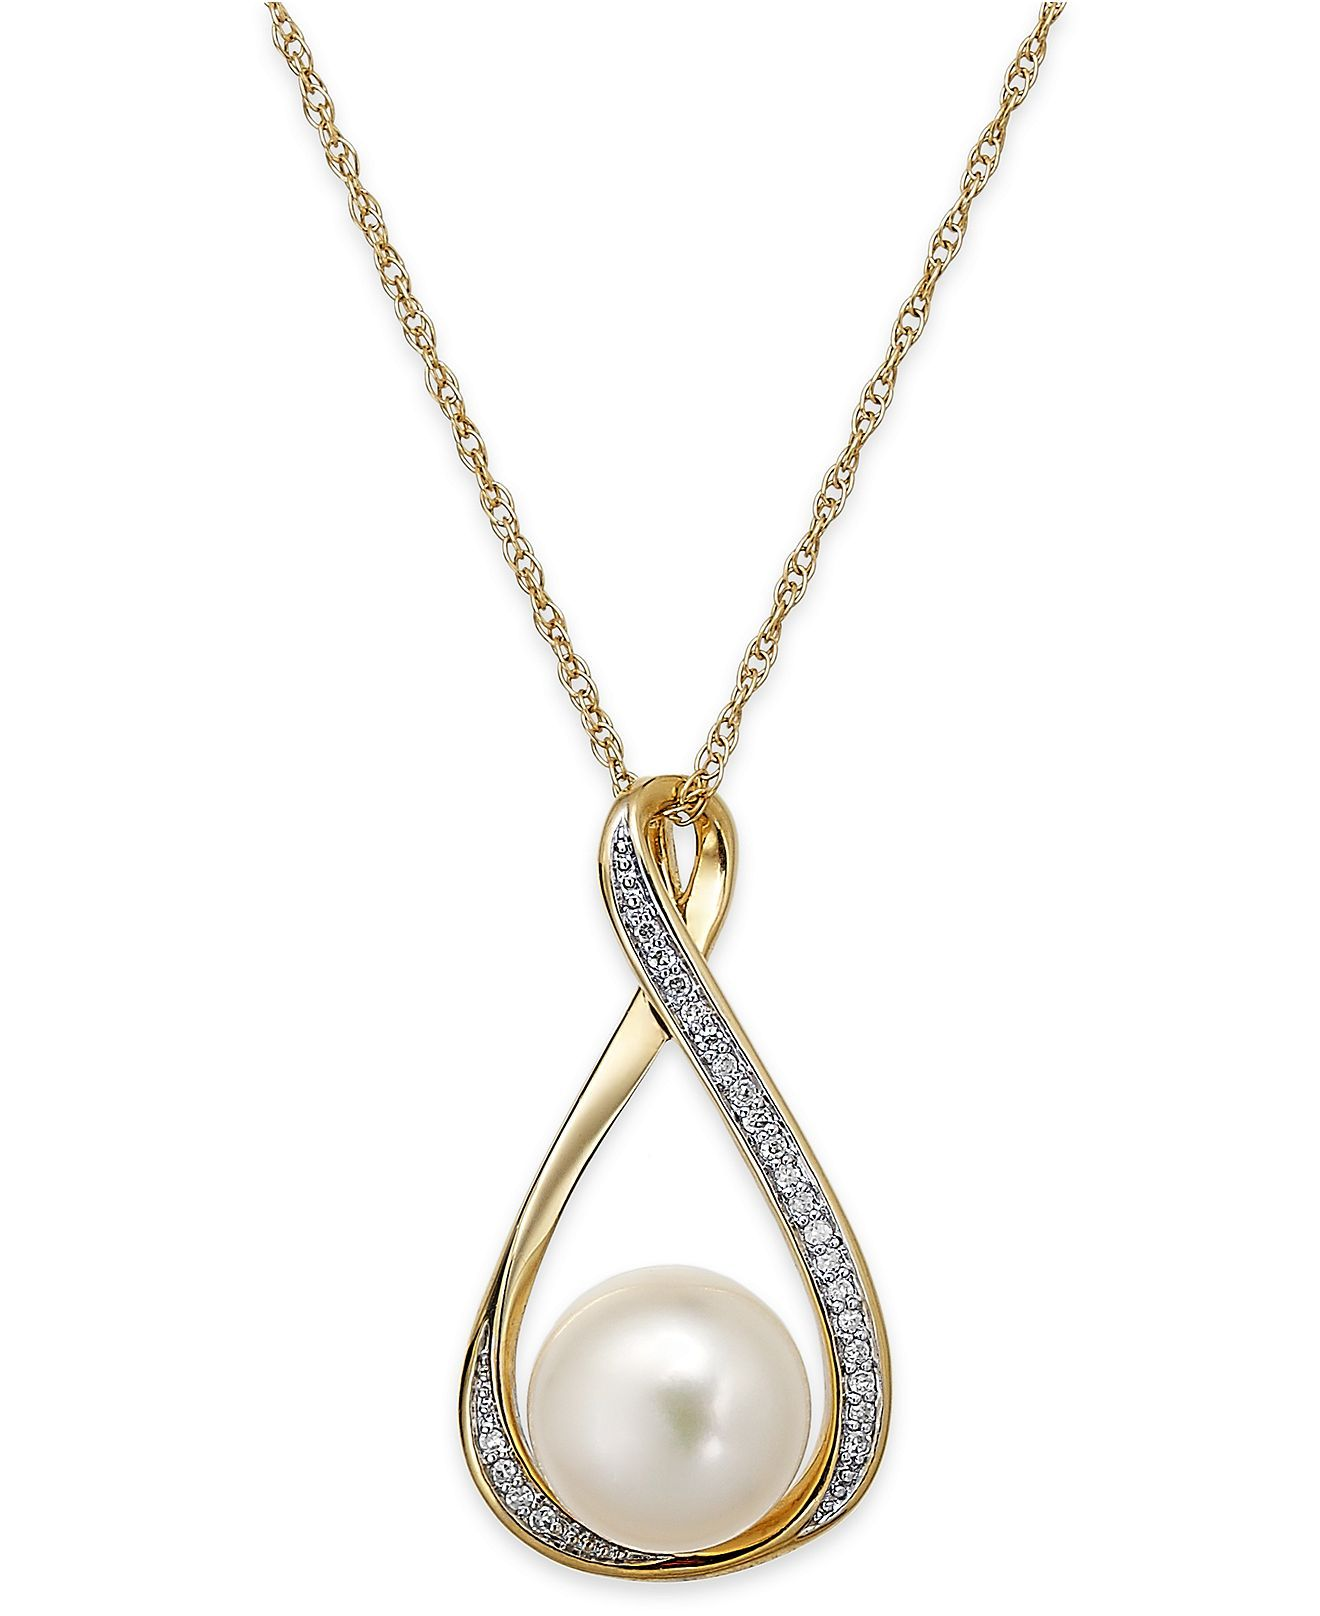 Cultured Freshwater Pearl (9mm) And Diamond Accent Pendant Necklace In 14k  Gold